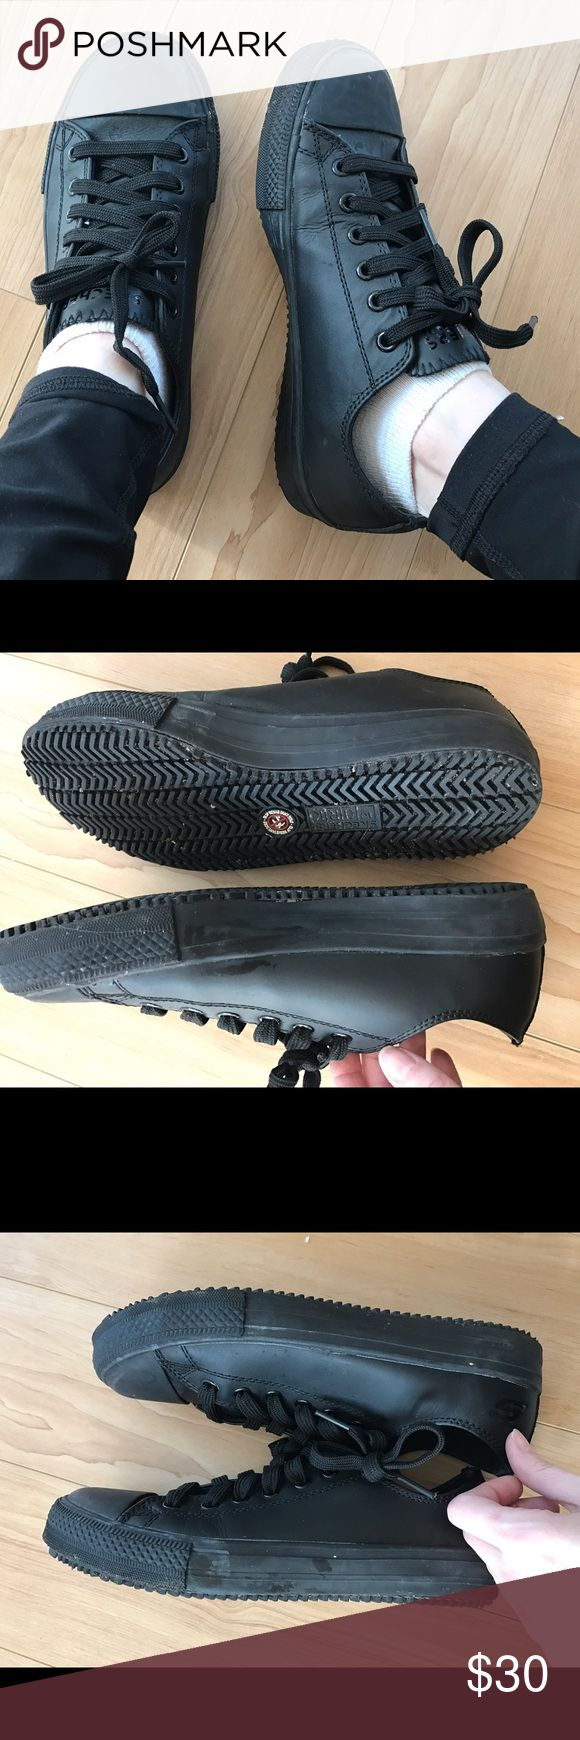 Skechers Work Non Slip Resistant All Black Shoes 7 Looks like converse all star style, worn only a few times but does have some wear as shown on sides and bottom and inside Skechers Shoes Sneakers